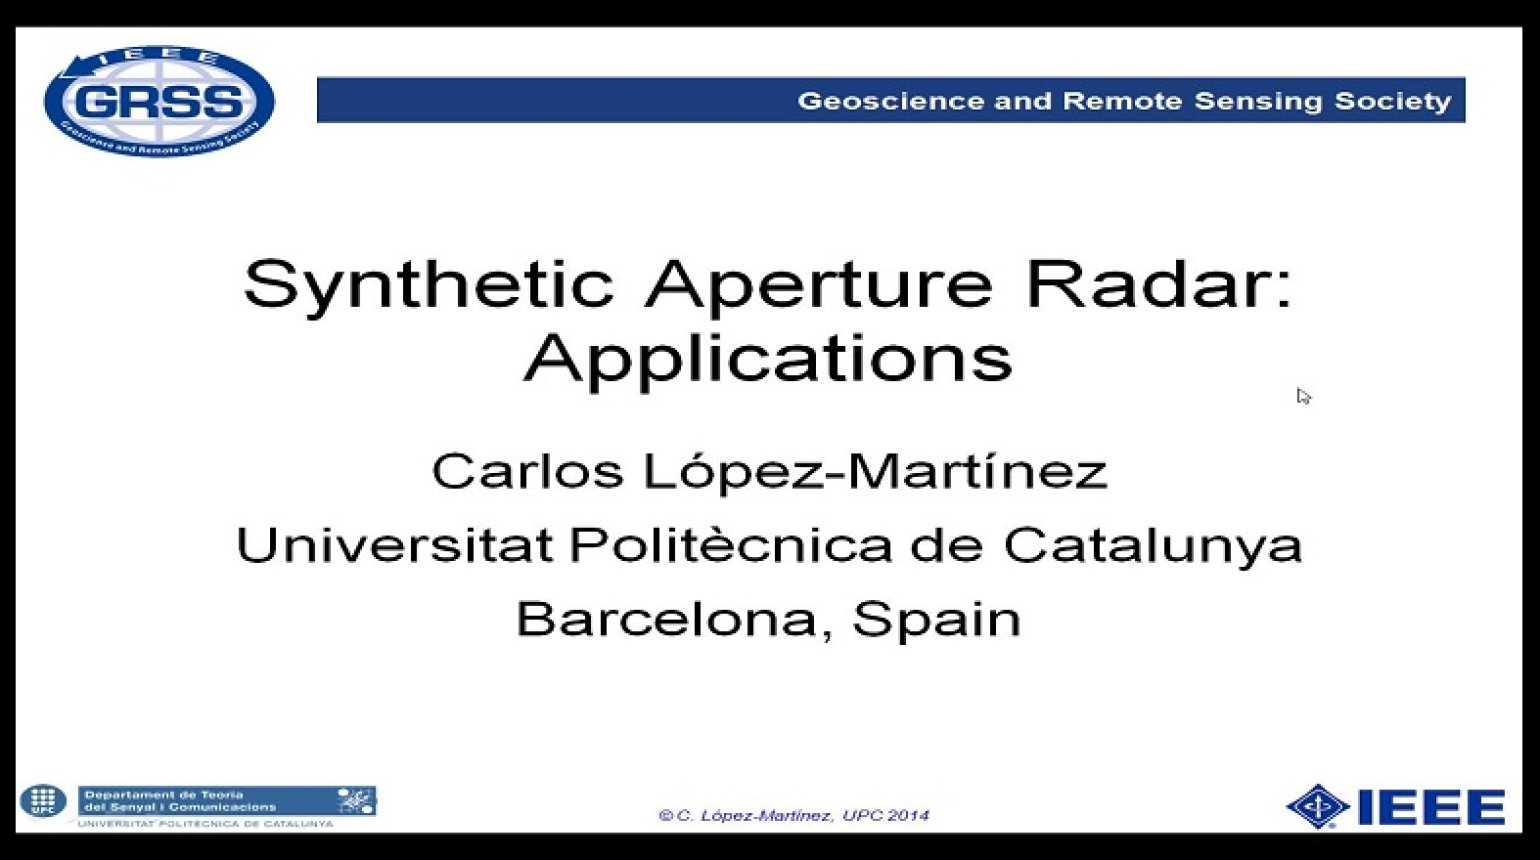 Synthetic Aperture Radar: Applications